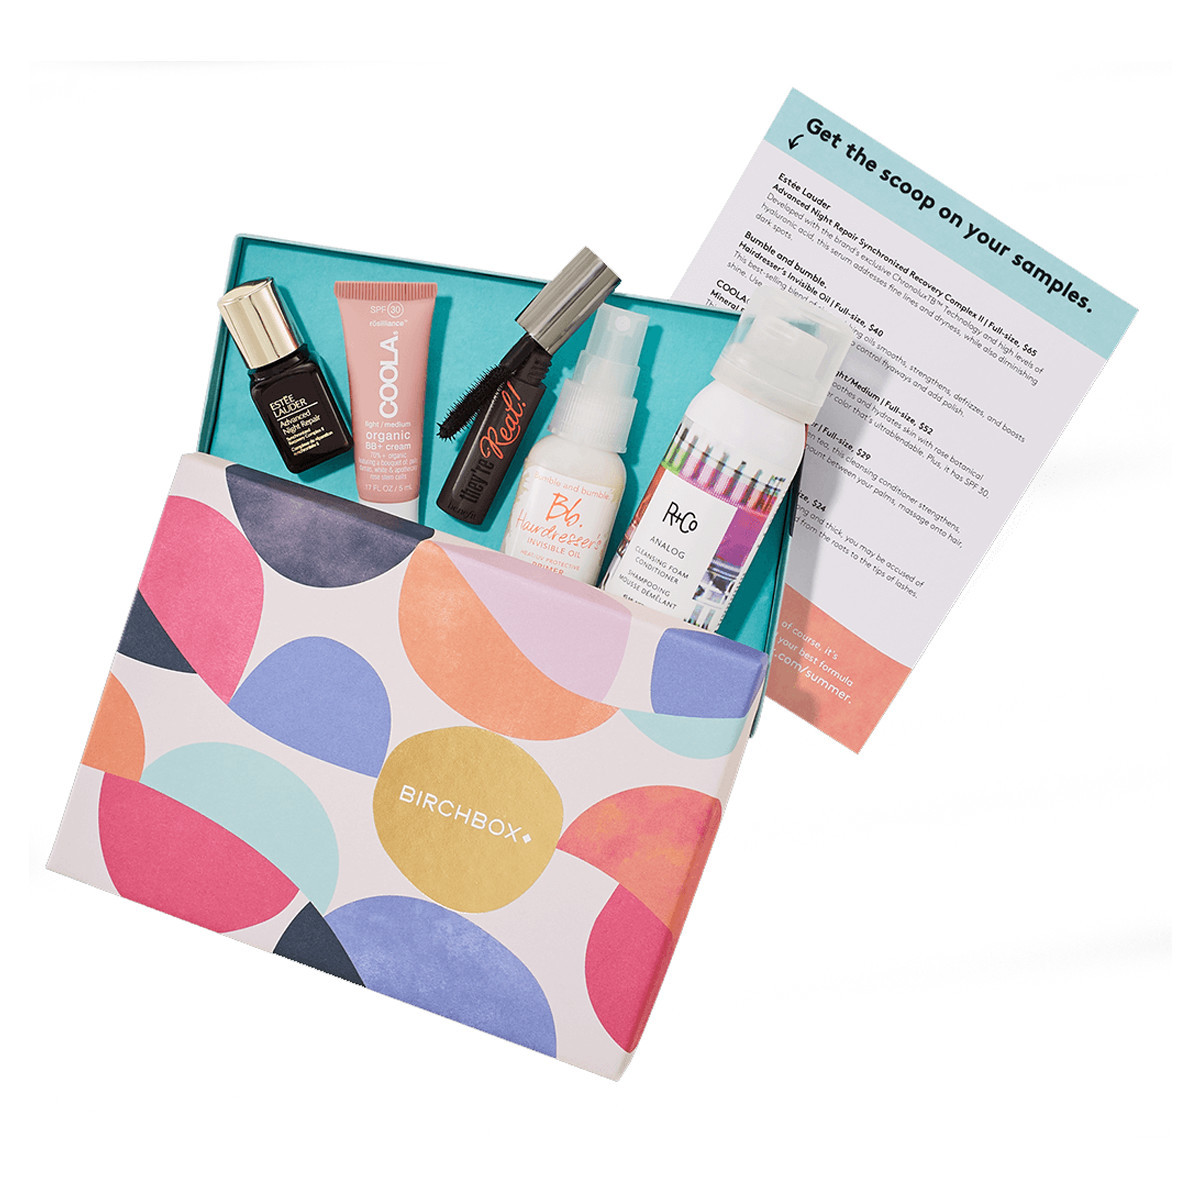 Birchbox photo